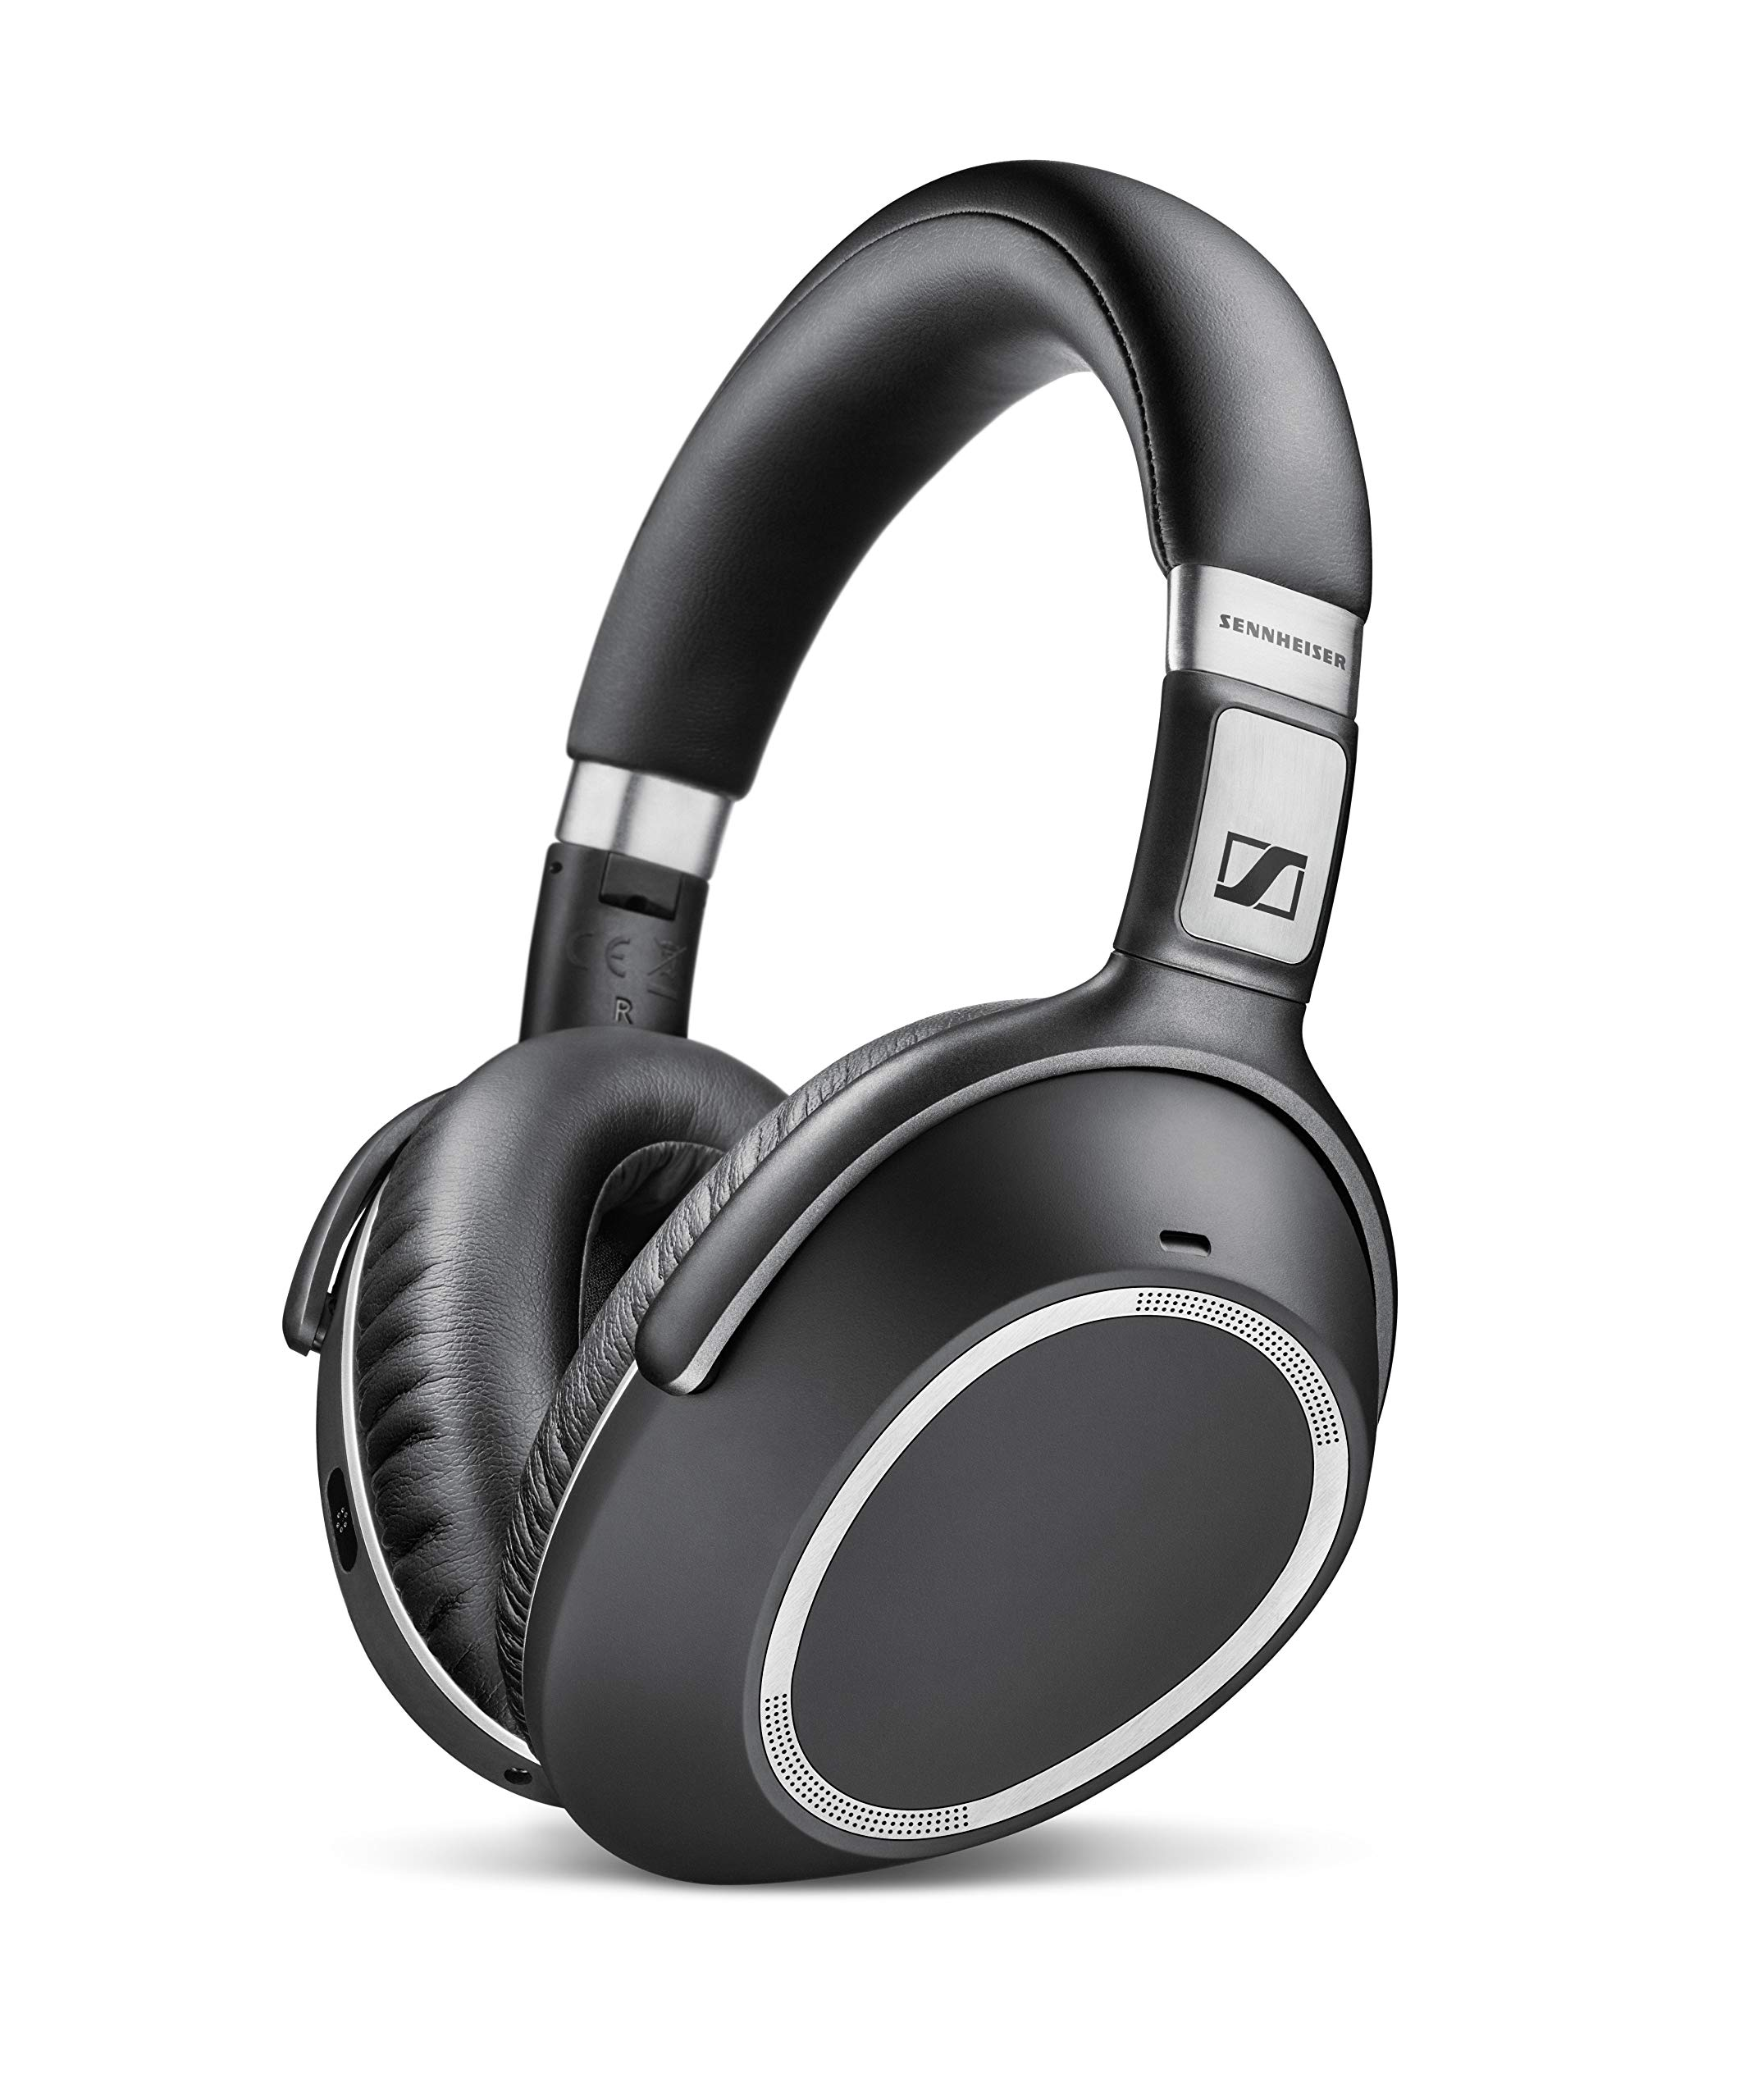 Sennheiser PXC 550 Wireless - NoiseGard Adaptive Noise Cancelling, Bluetooth Headphone with Touch Sensitive Control and 30-Hour Battery Life by Sennheiser Consumer Audio